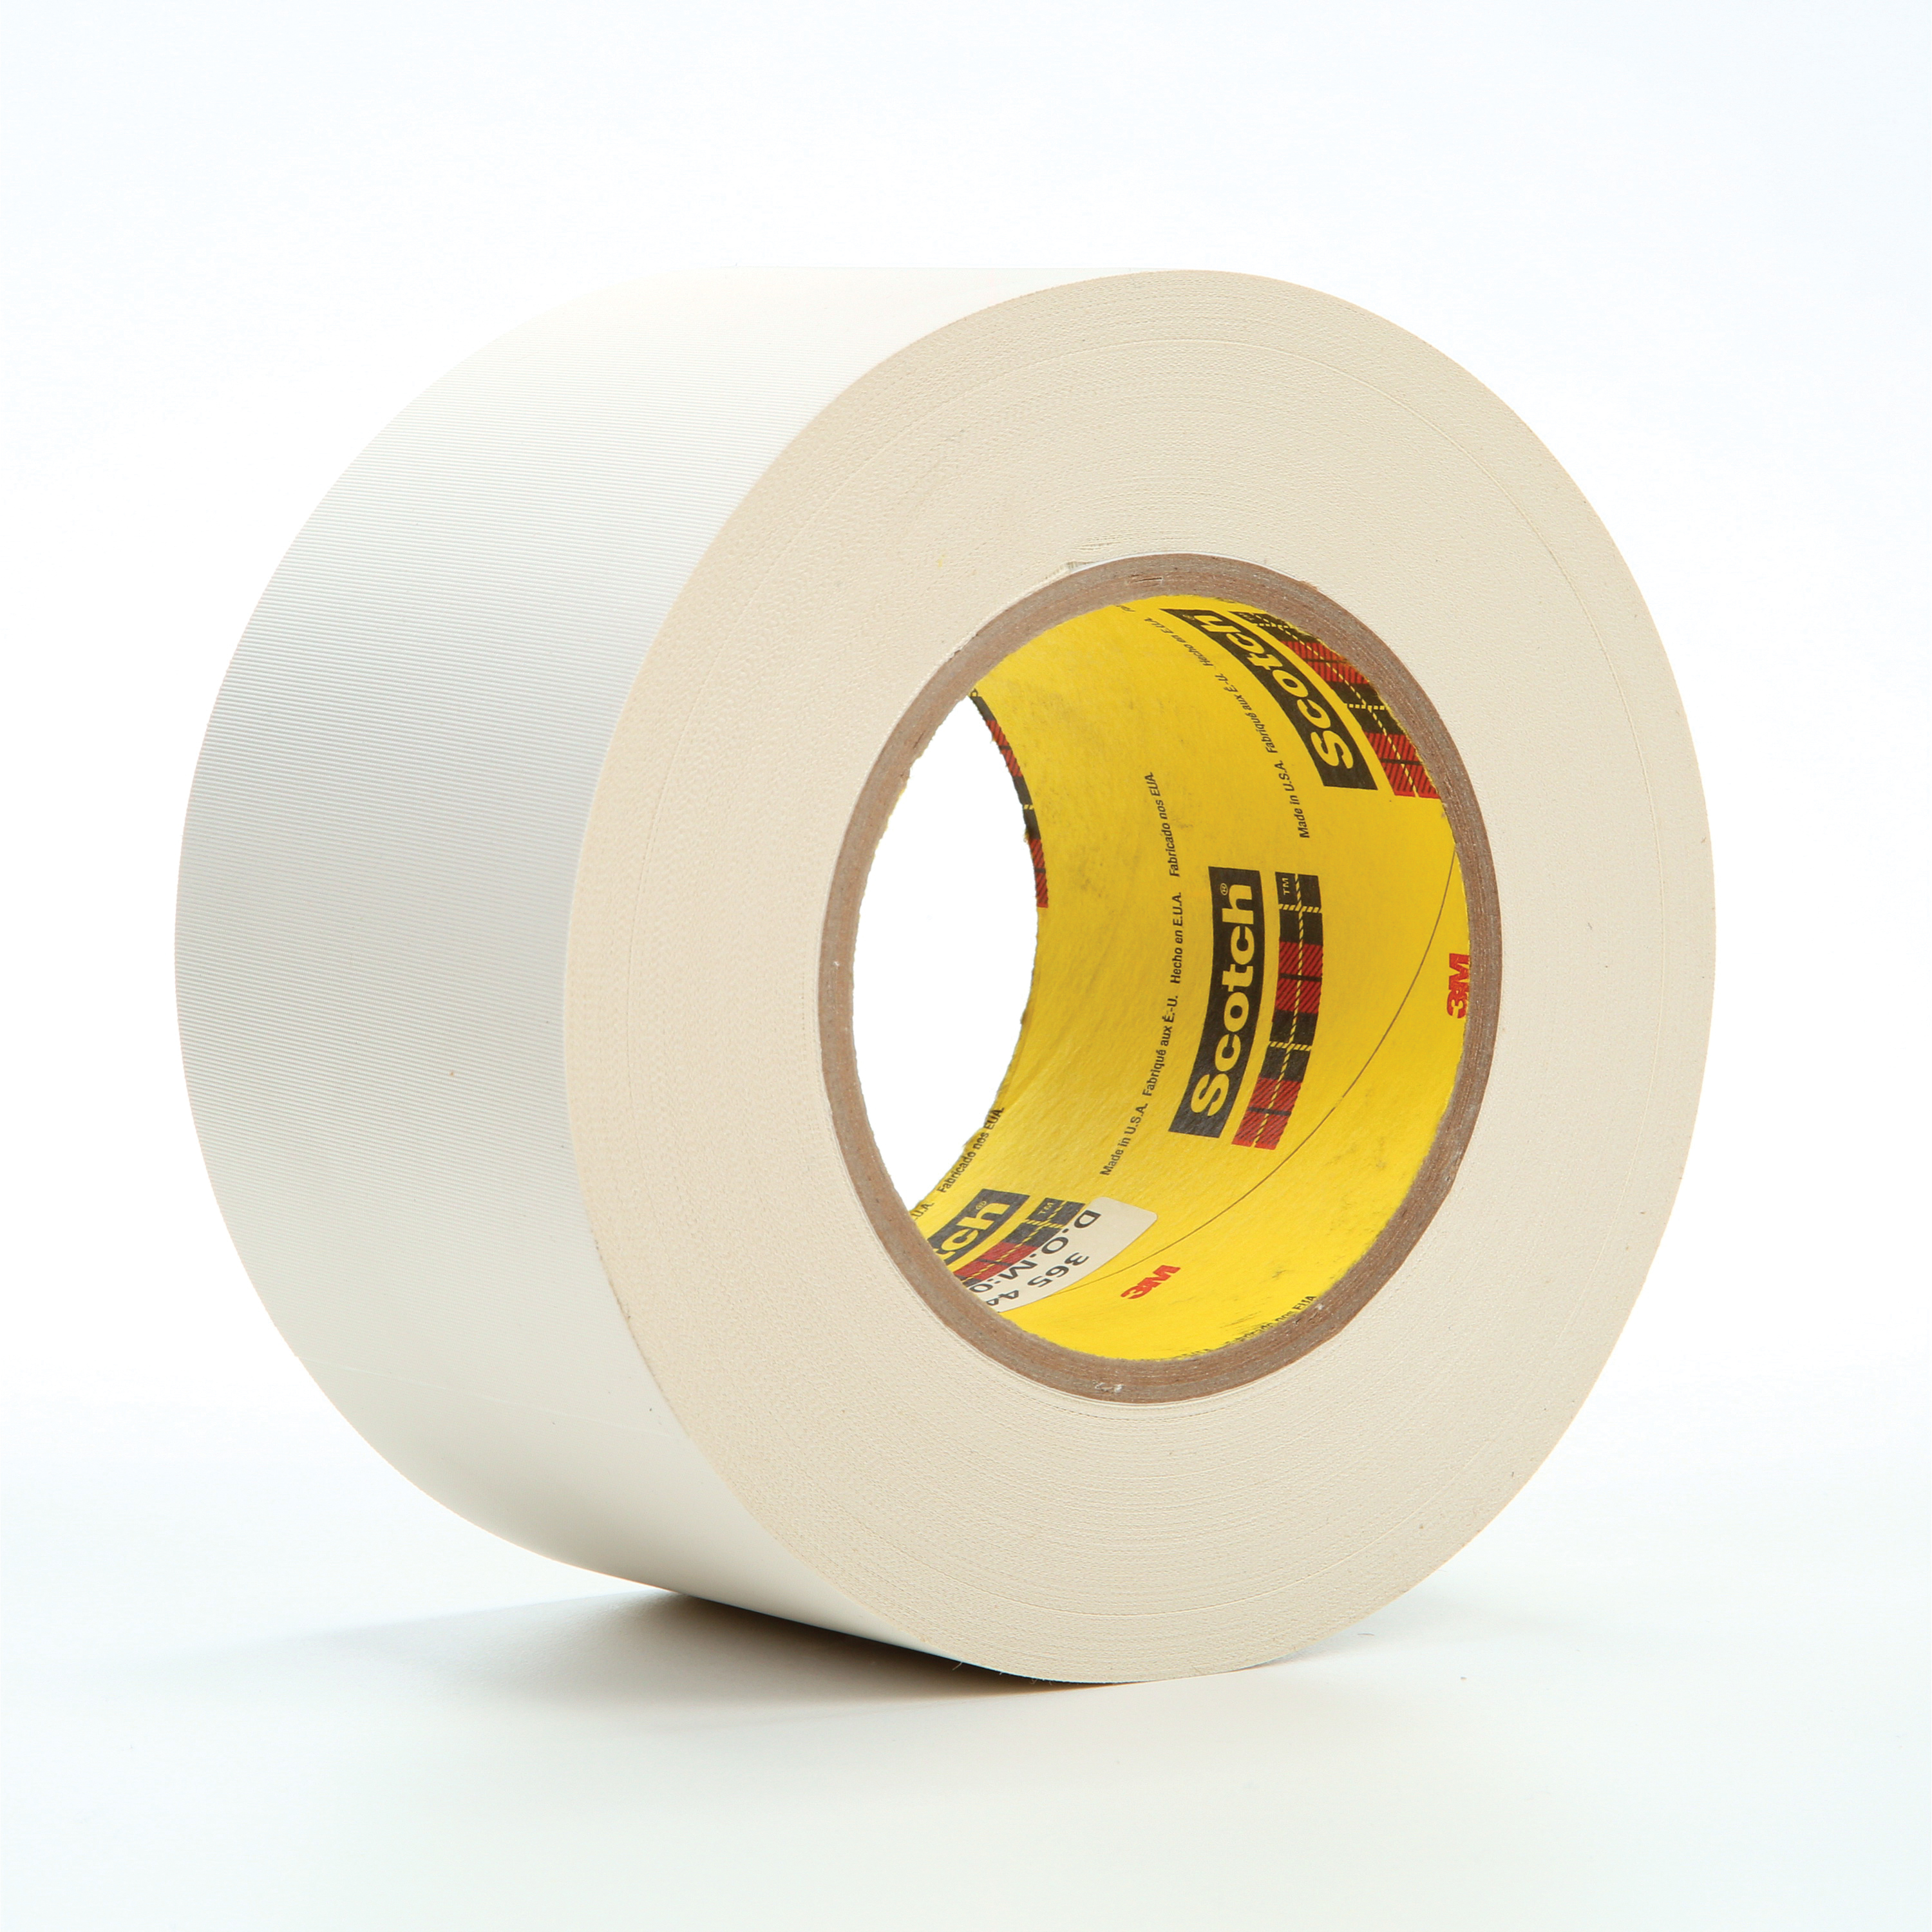 3M™ 021200-03021 Cloth Tape, 60 yd L x 3 in W, 8.3 mil THK, Thermoset Rubber Resin Adhesive, Glass Cloth Backing, White